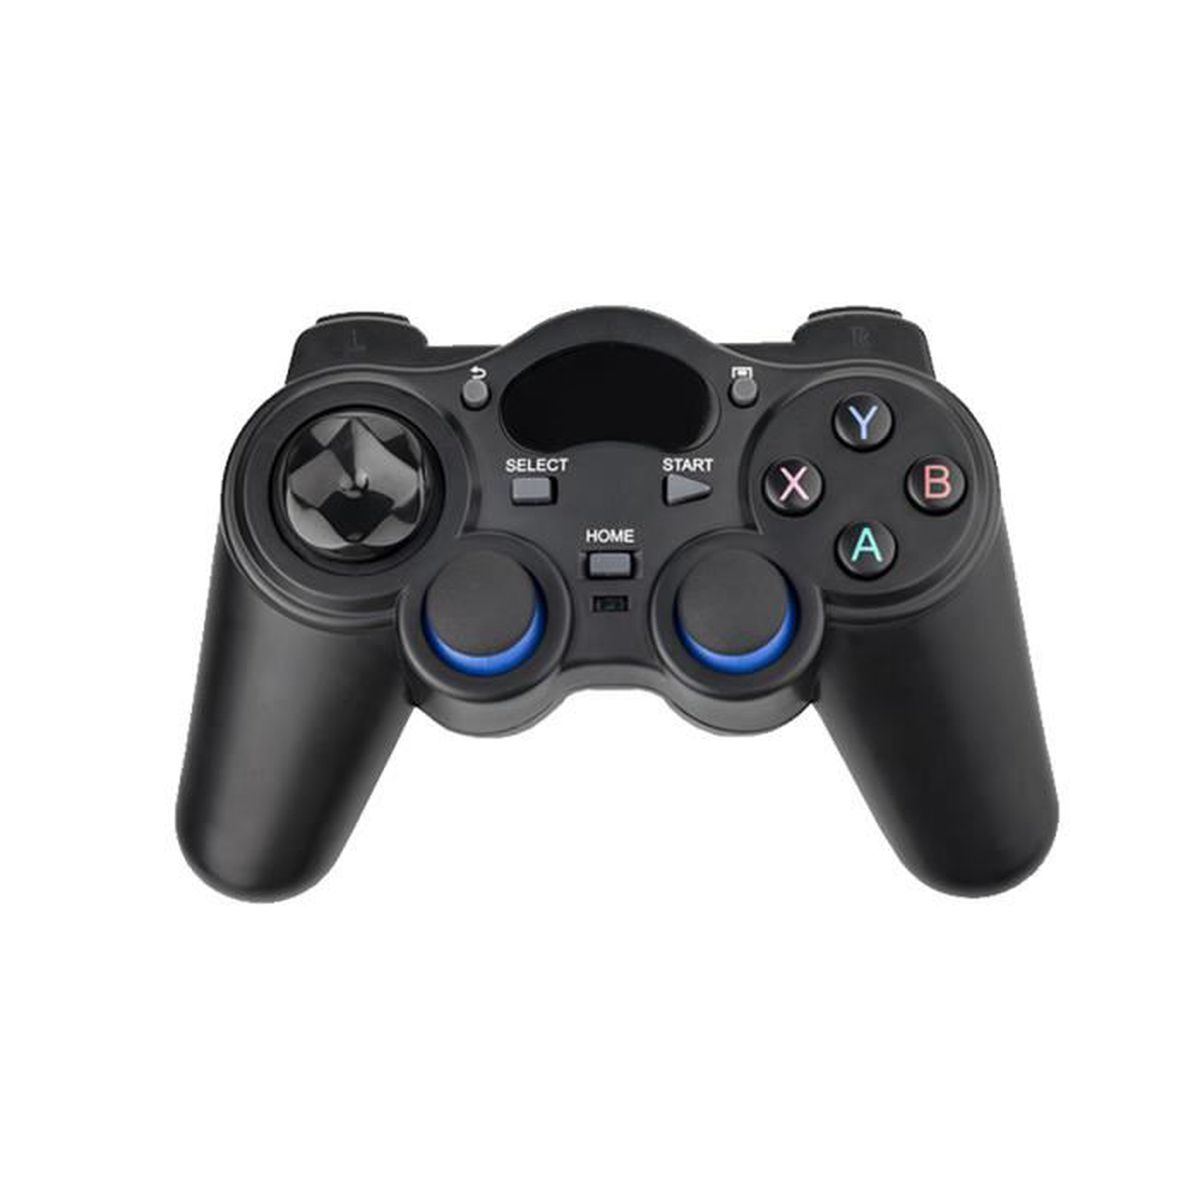 manette de jeux sans fil gaming manette pour android tv box tablets pc joystick prix pas cher. Black Bedroom Furniture Sets. Home Design Ideas